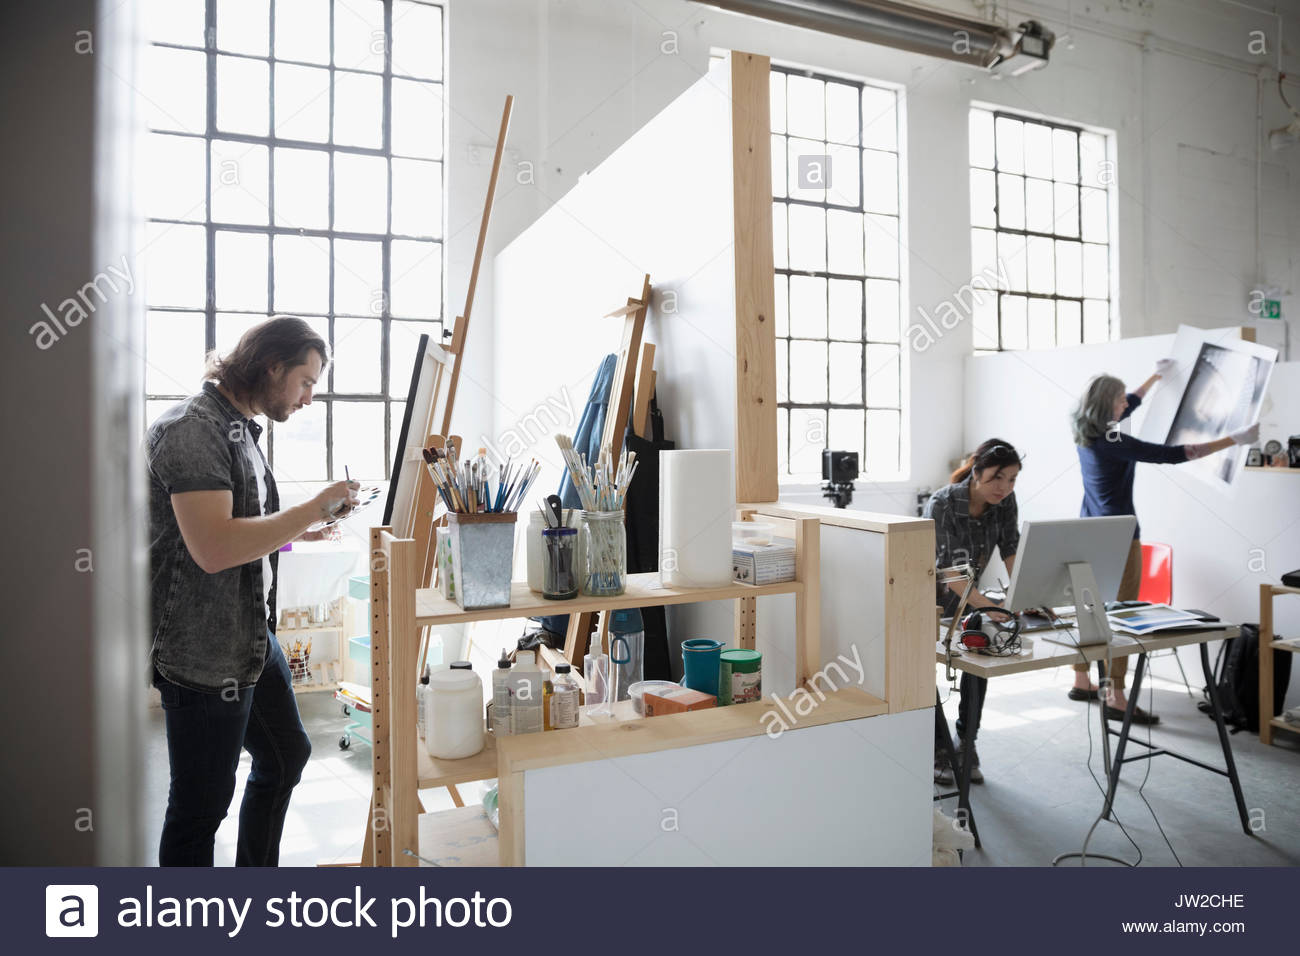 Painter painting at canvas on easel near photographers reviewing print in coworking space art studio - Stock Image